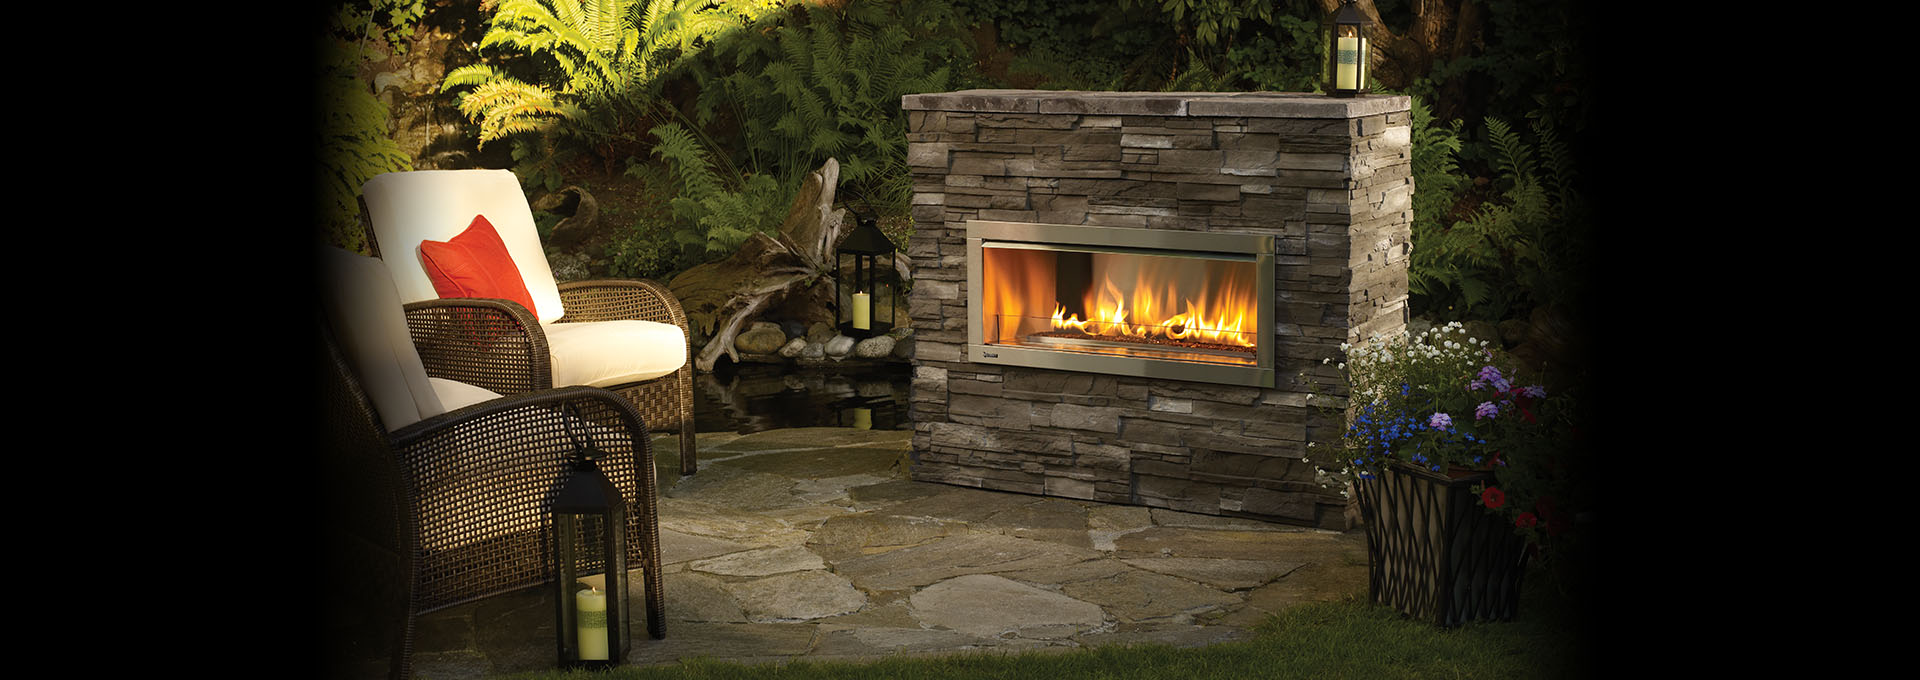 Endless Possibilities For Your Outdoor Oasis